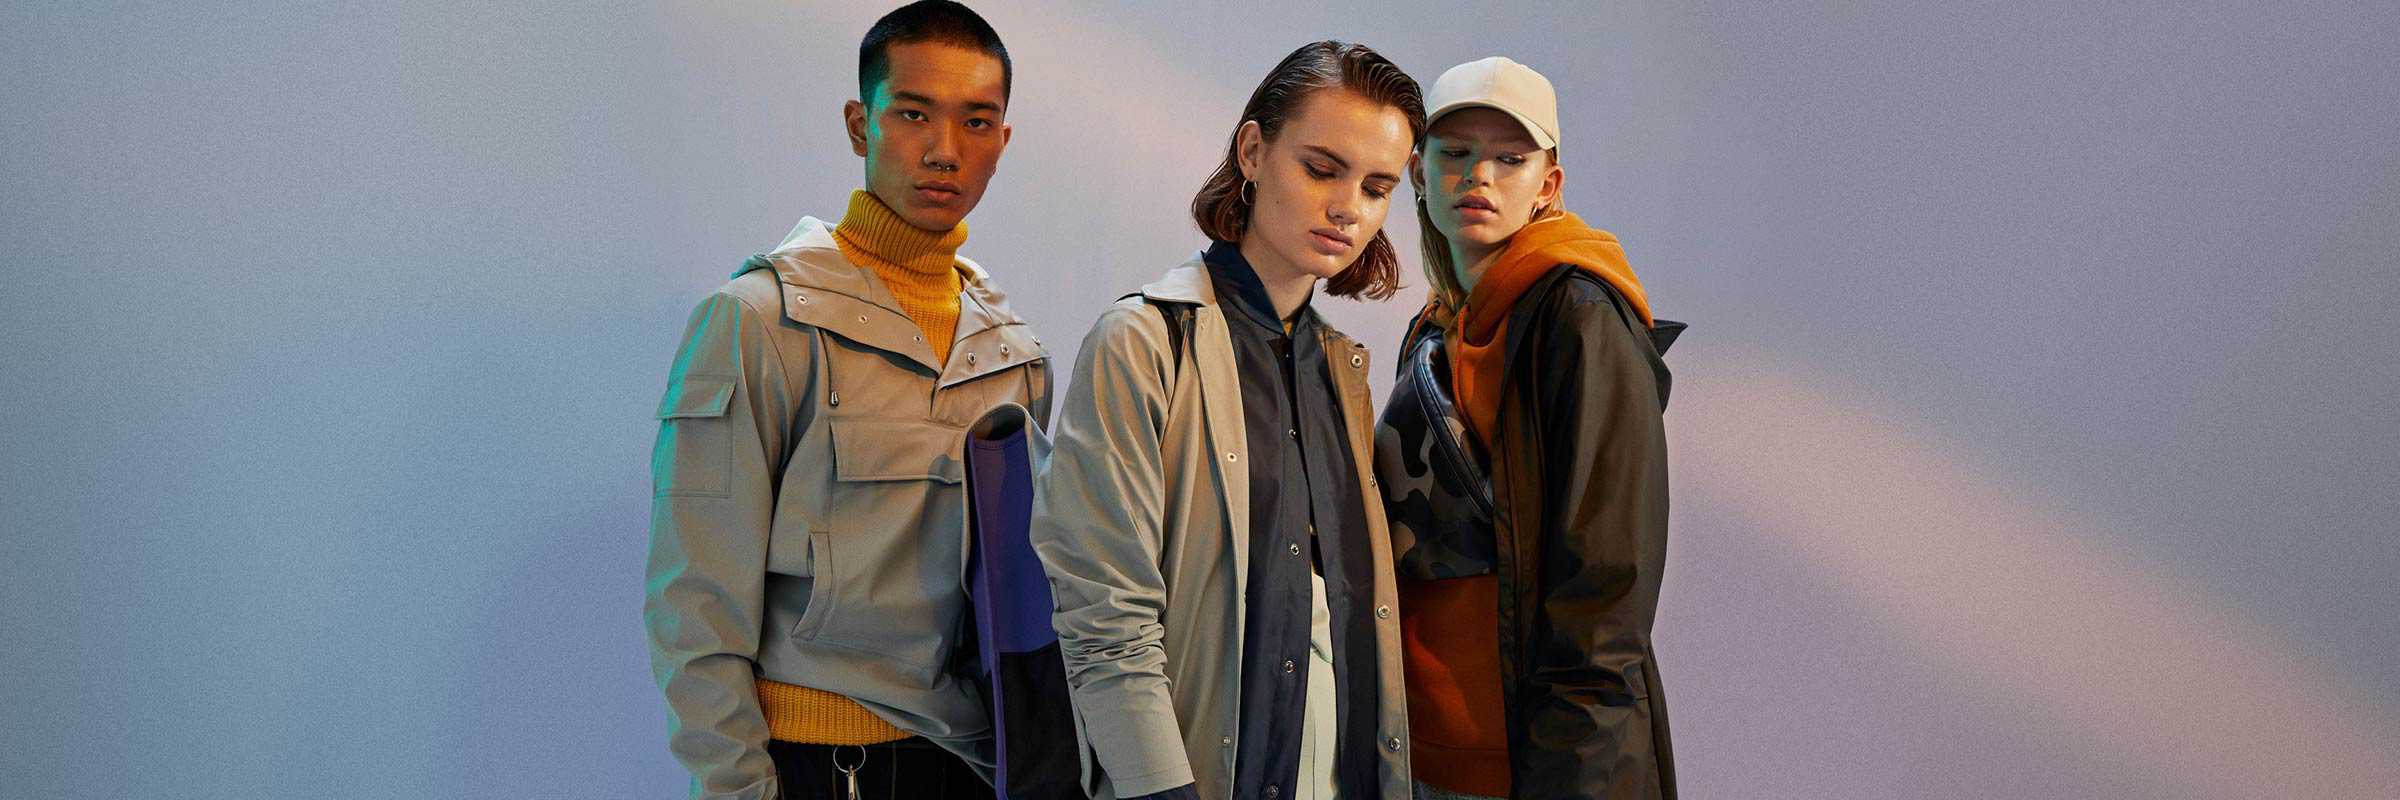 RAINS & Stutterheim: Urban And Unisex Raincoats